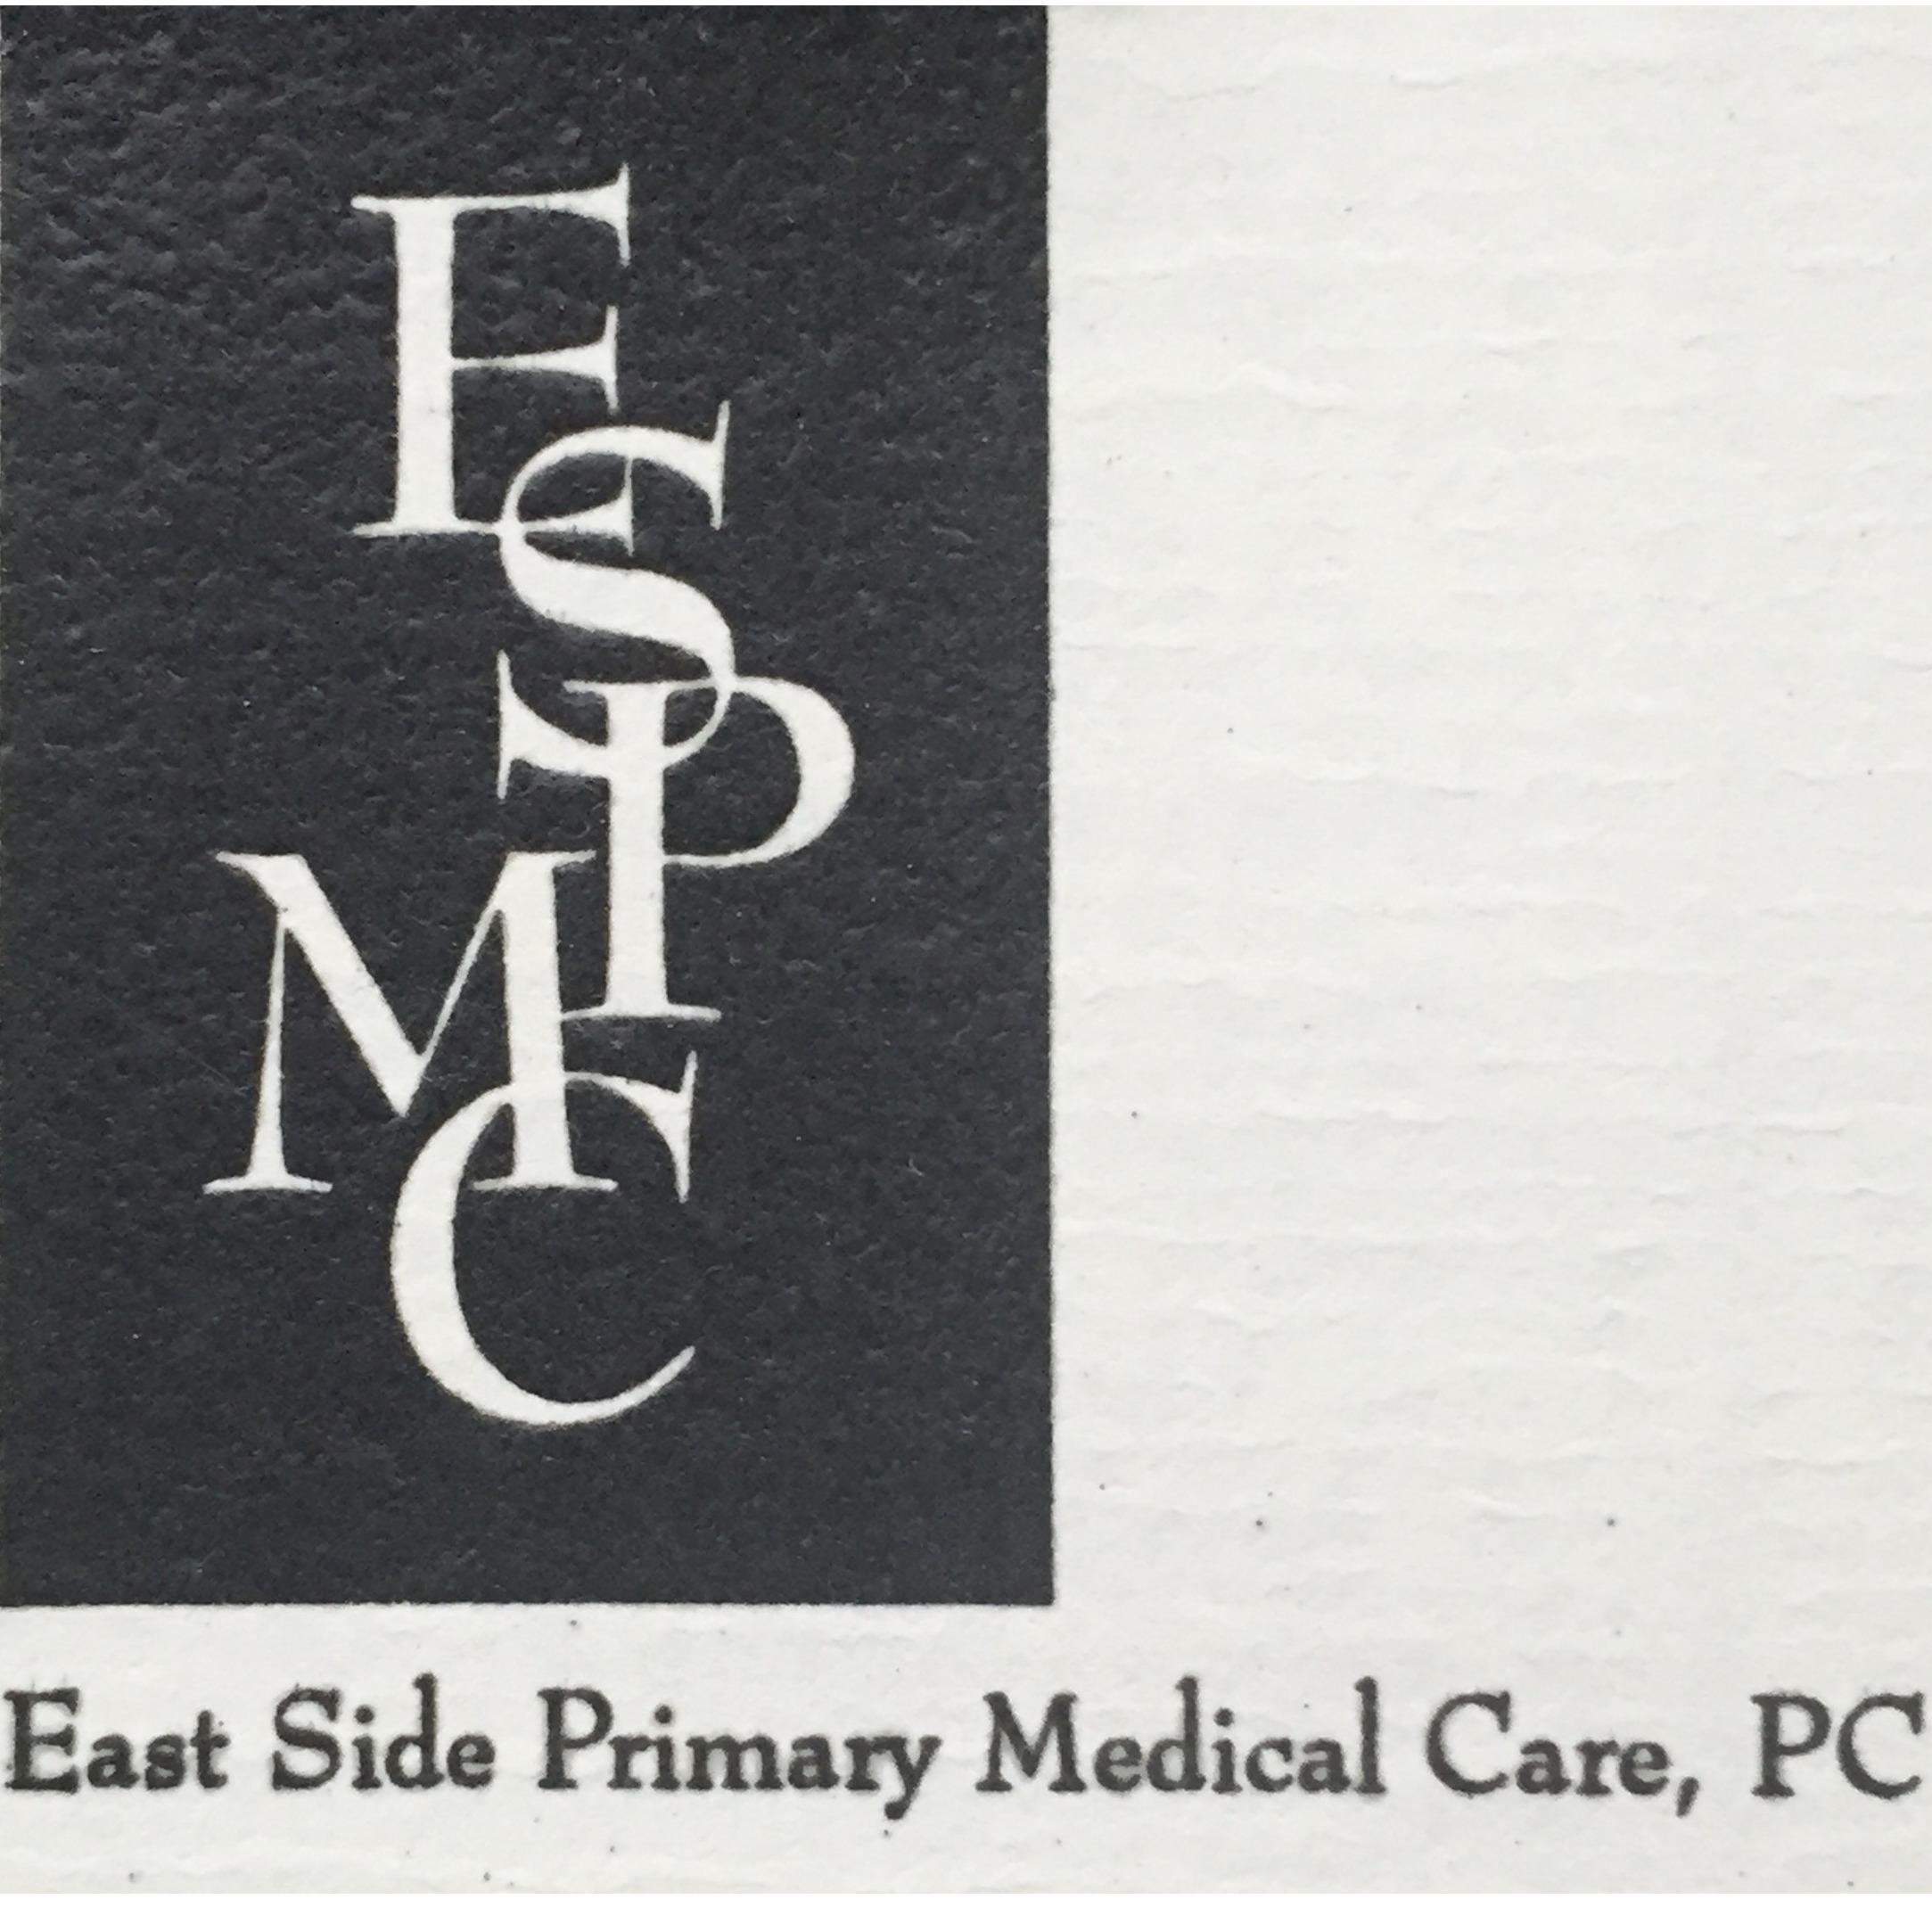 East Side Primary Medical Care